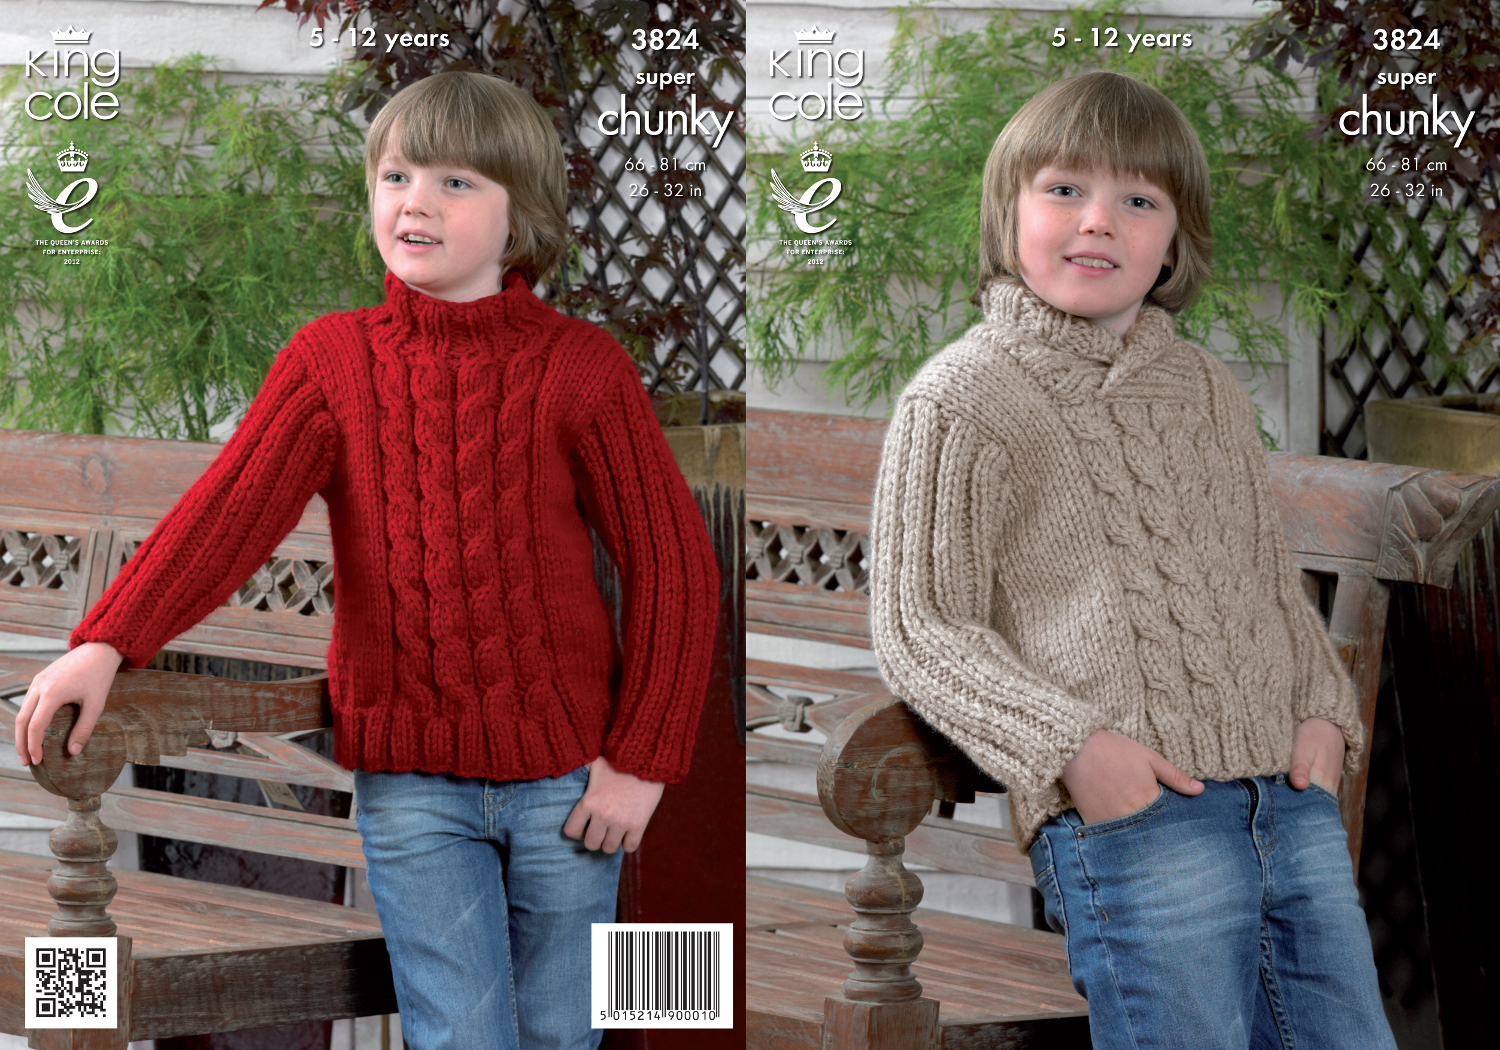 Super chunky knitting pattern king cole boys round roll neck super chunky knitting pattern king cole boys round roll neck sweater jumper 3824 bankloansurffo Image collections